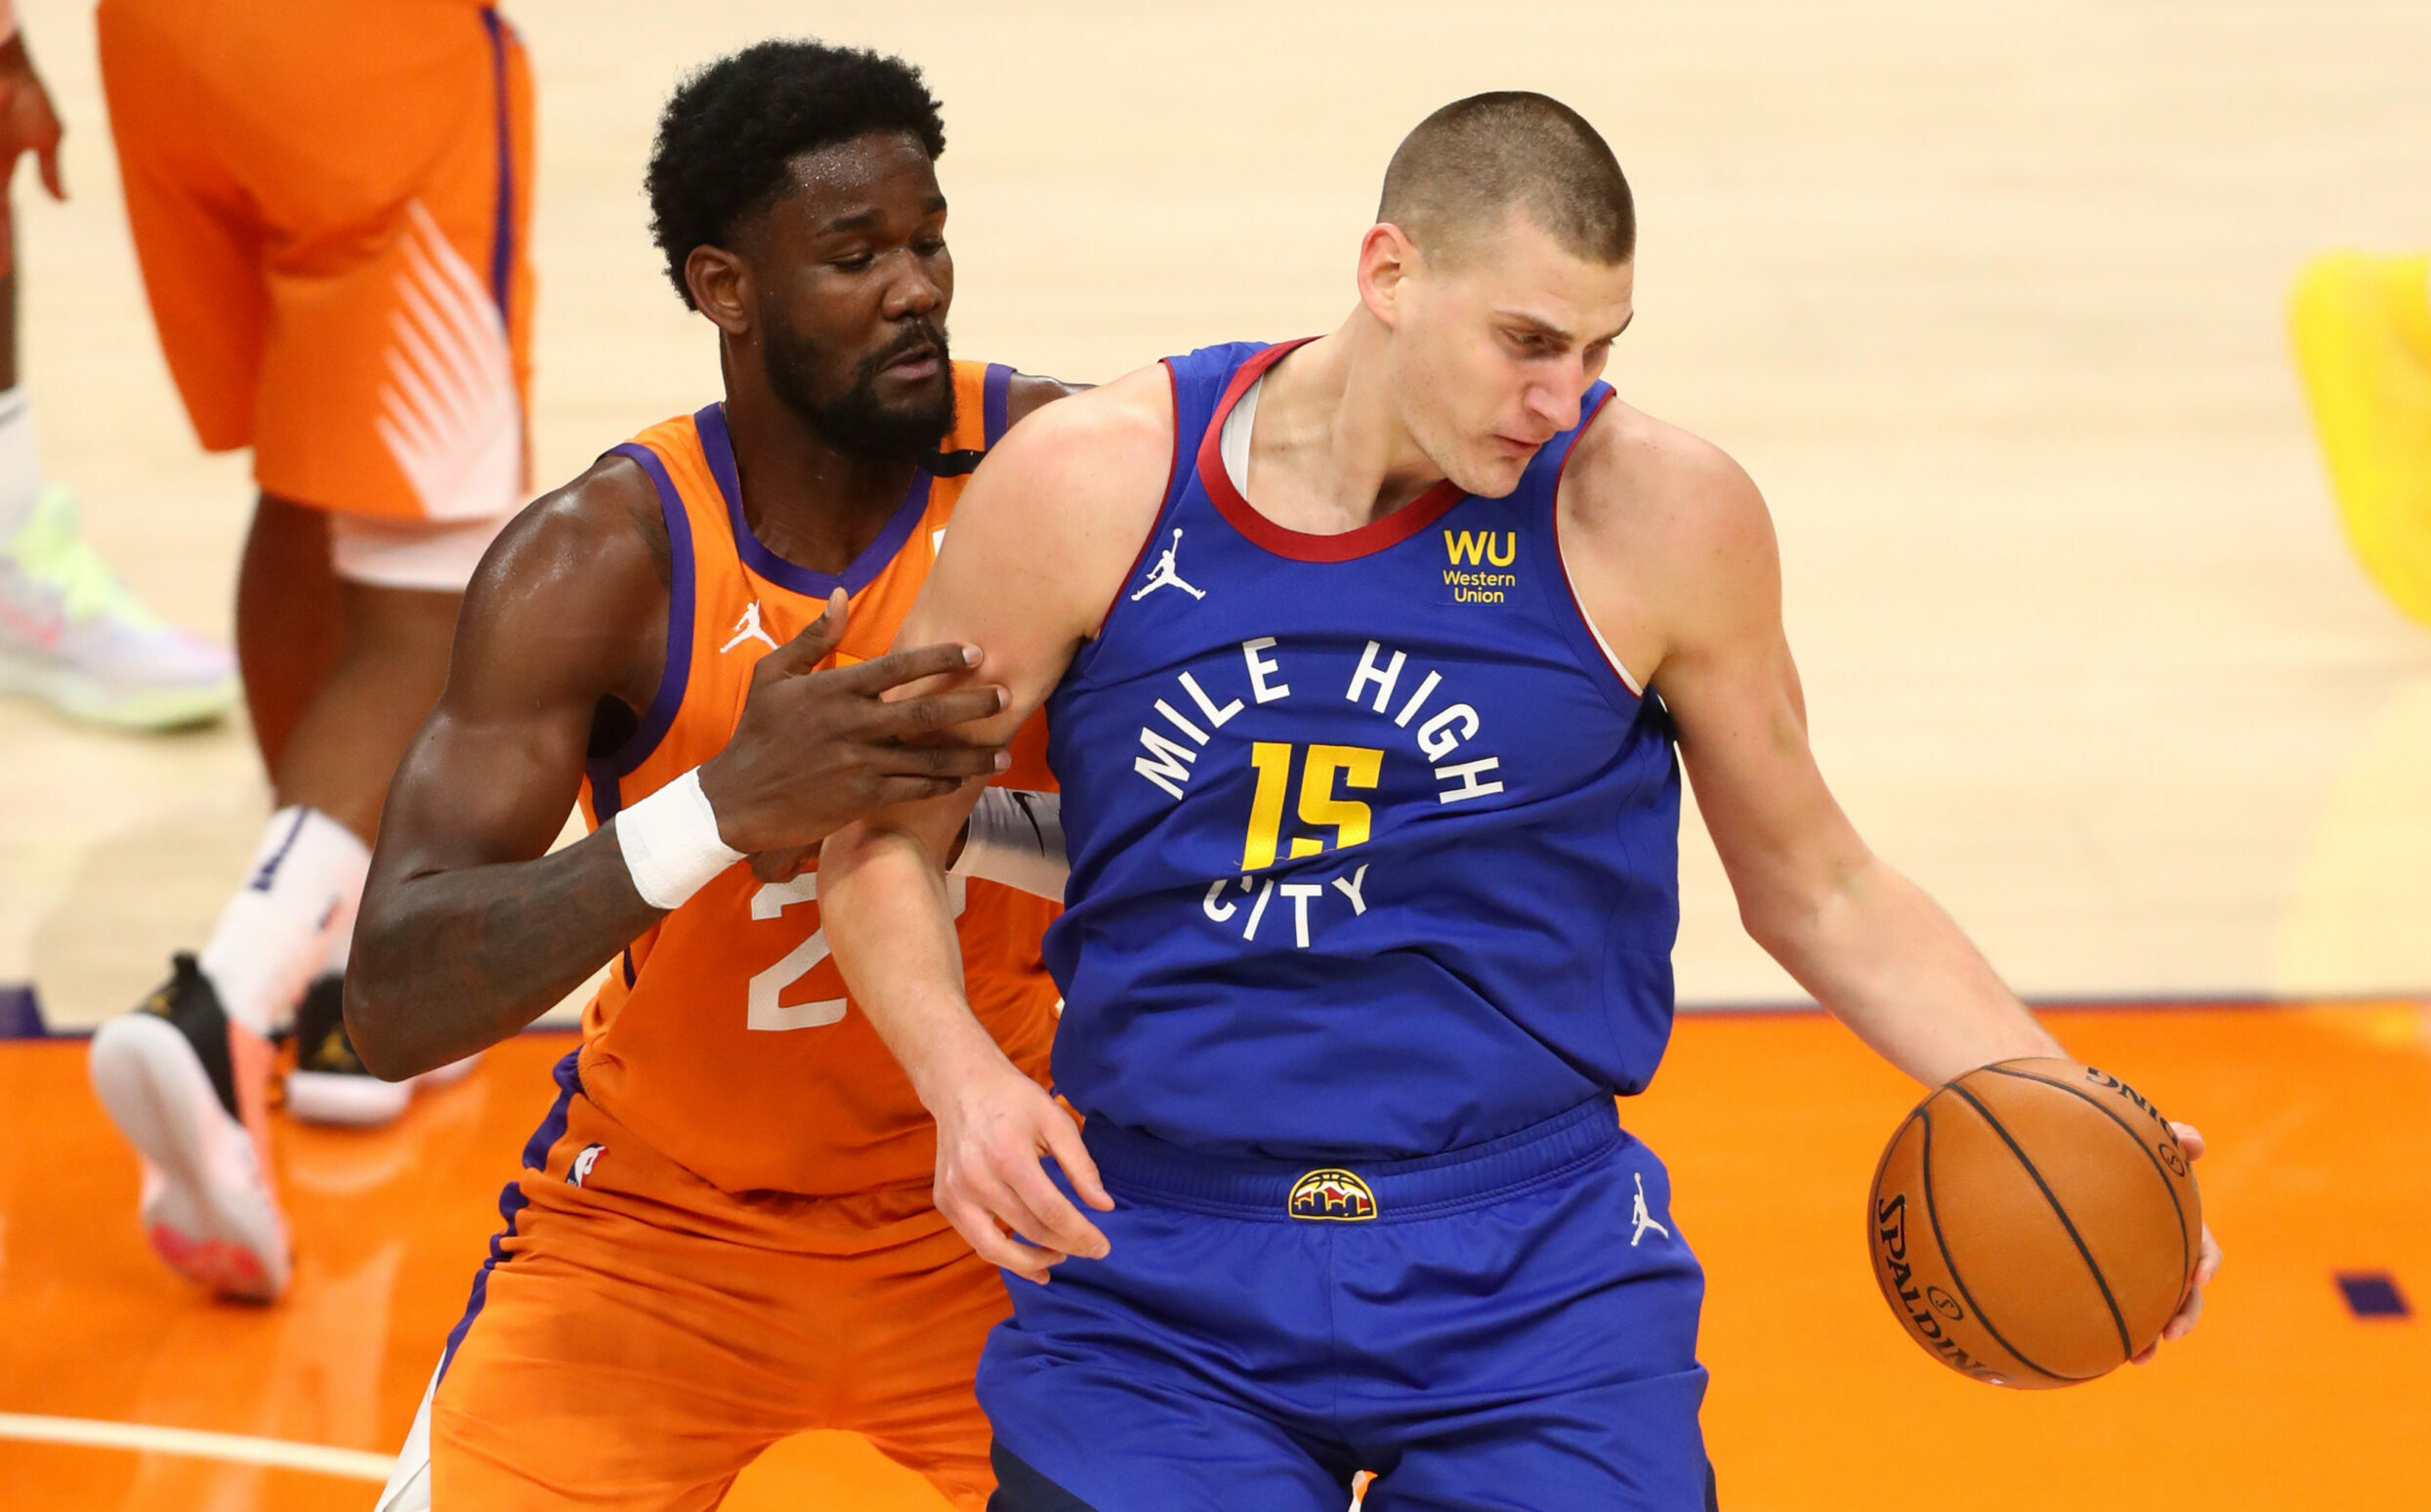 NBA awaits new champion, and path is wide open